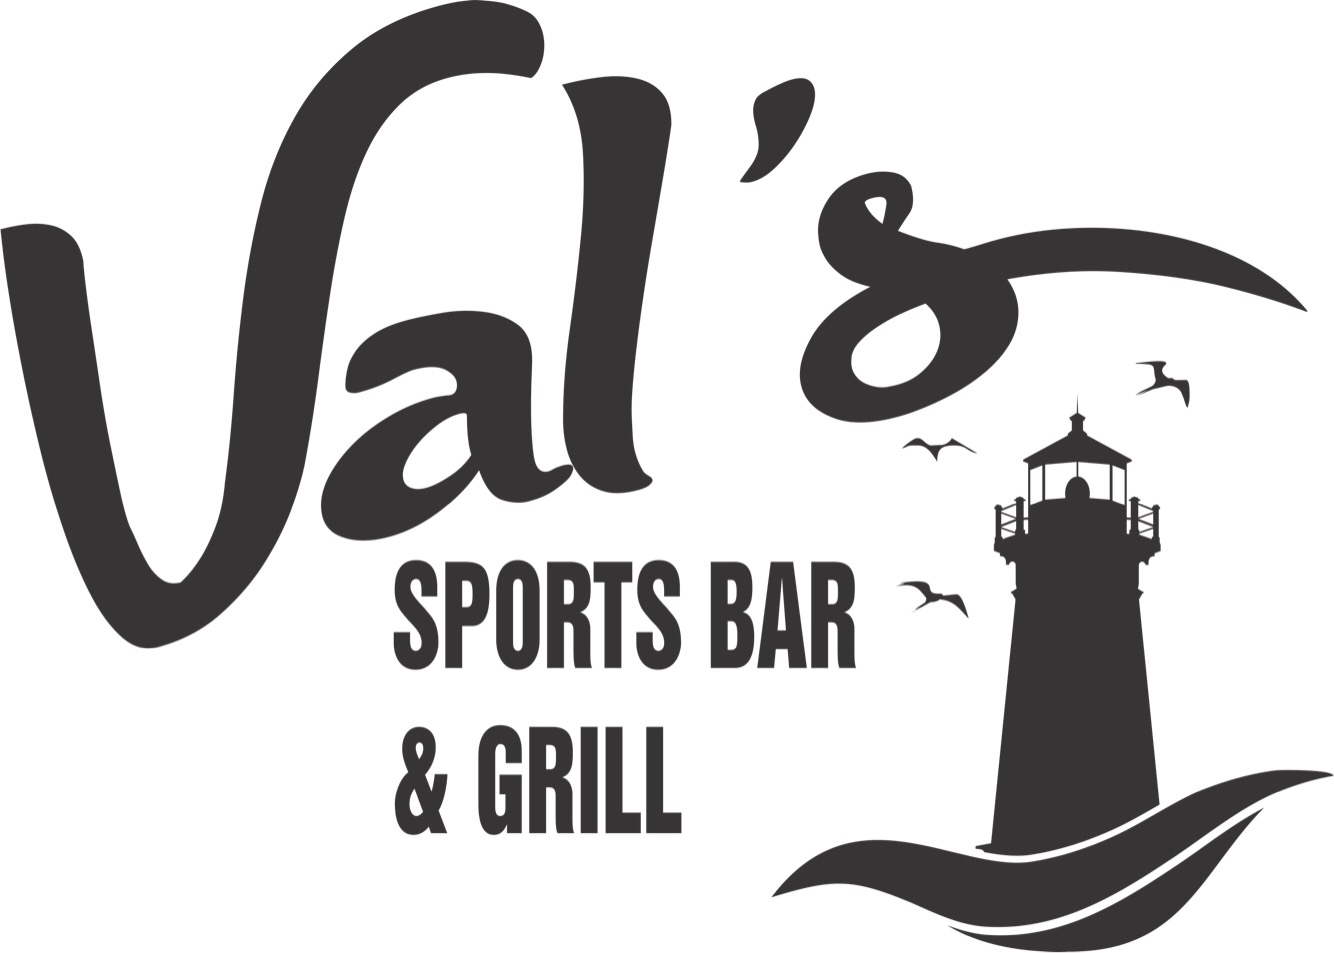 Val's Sports Bar & Grill